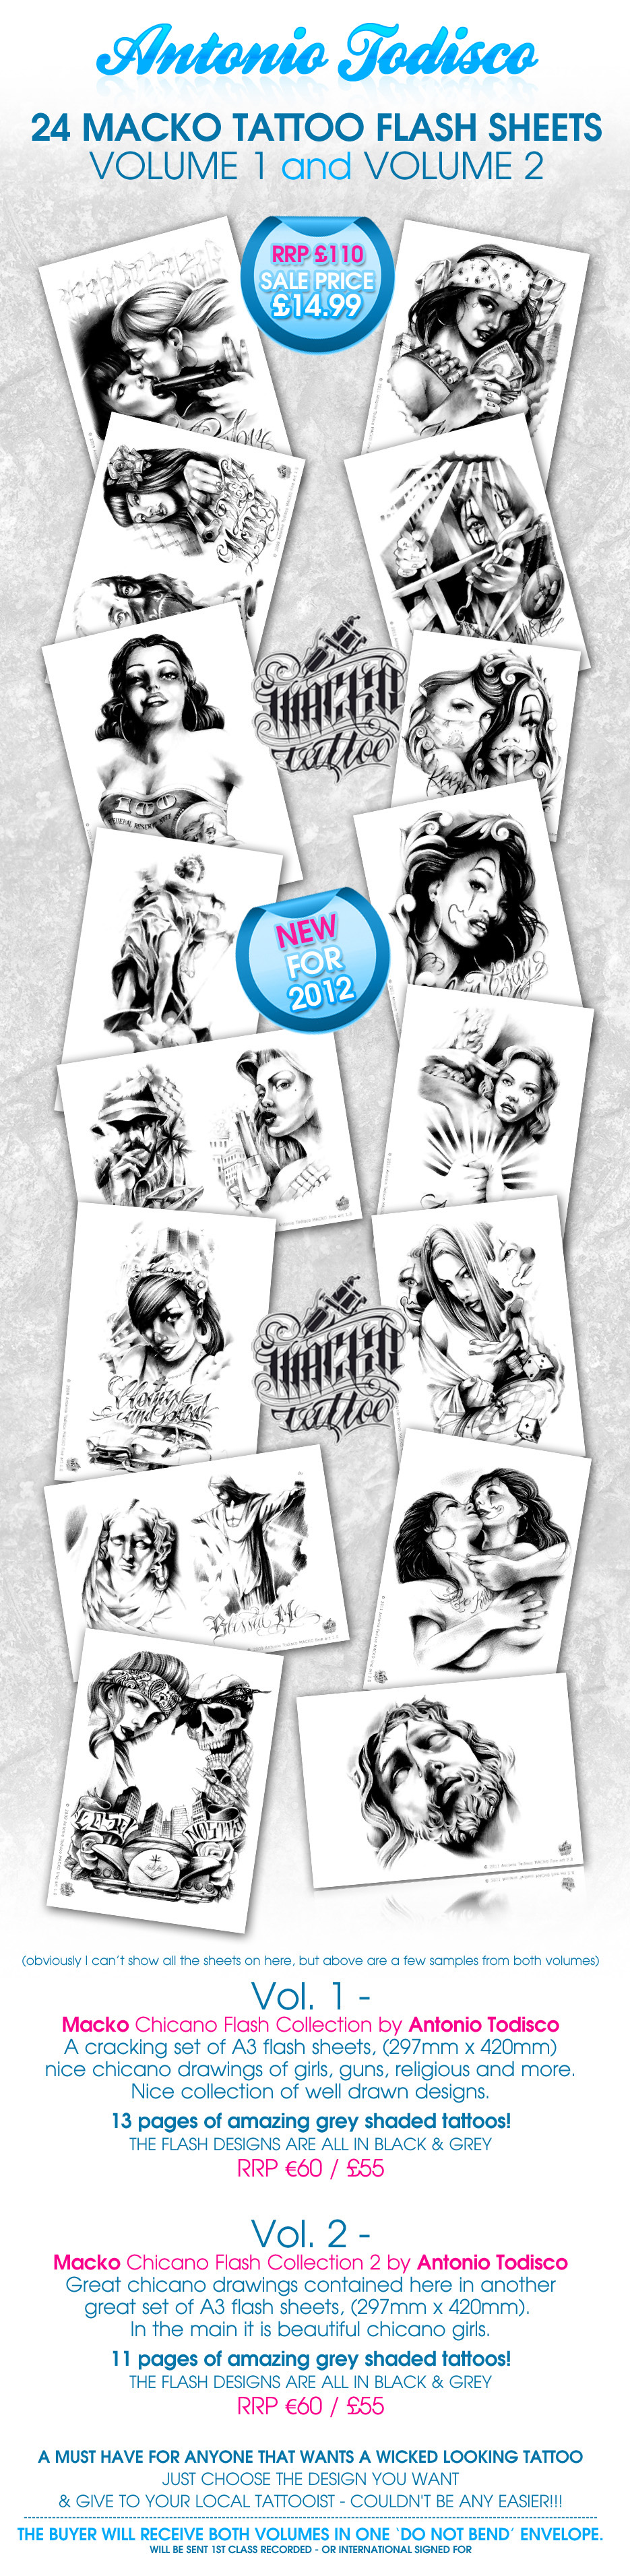 macko tattoo flash sheets designs gangster chicano chicks